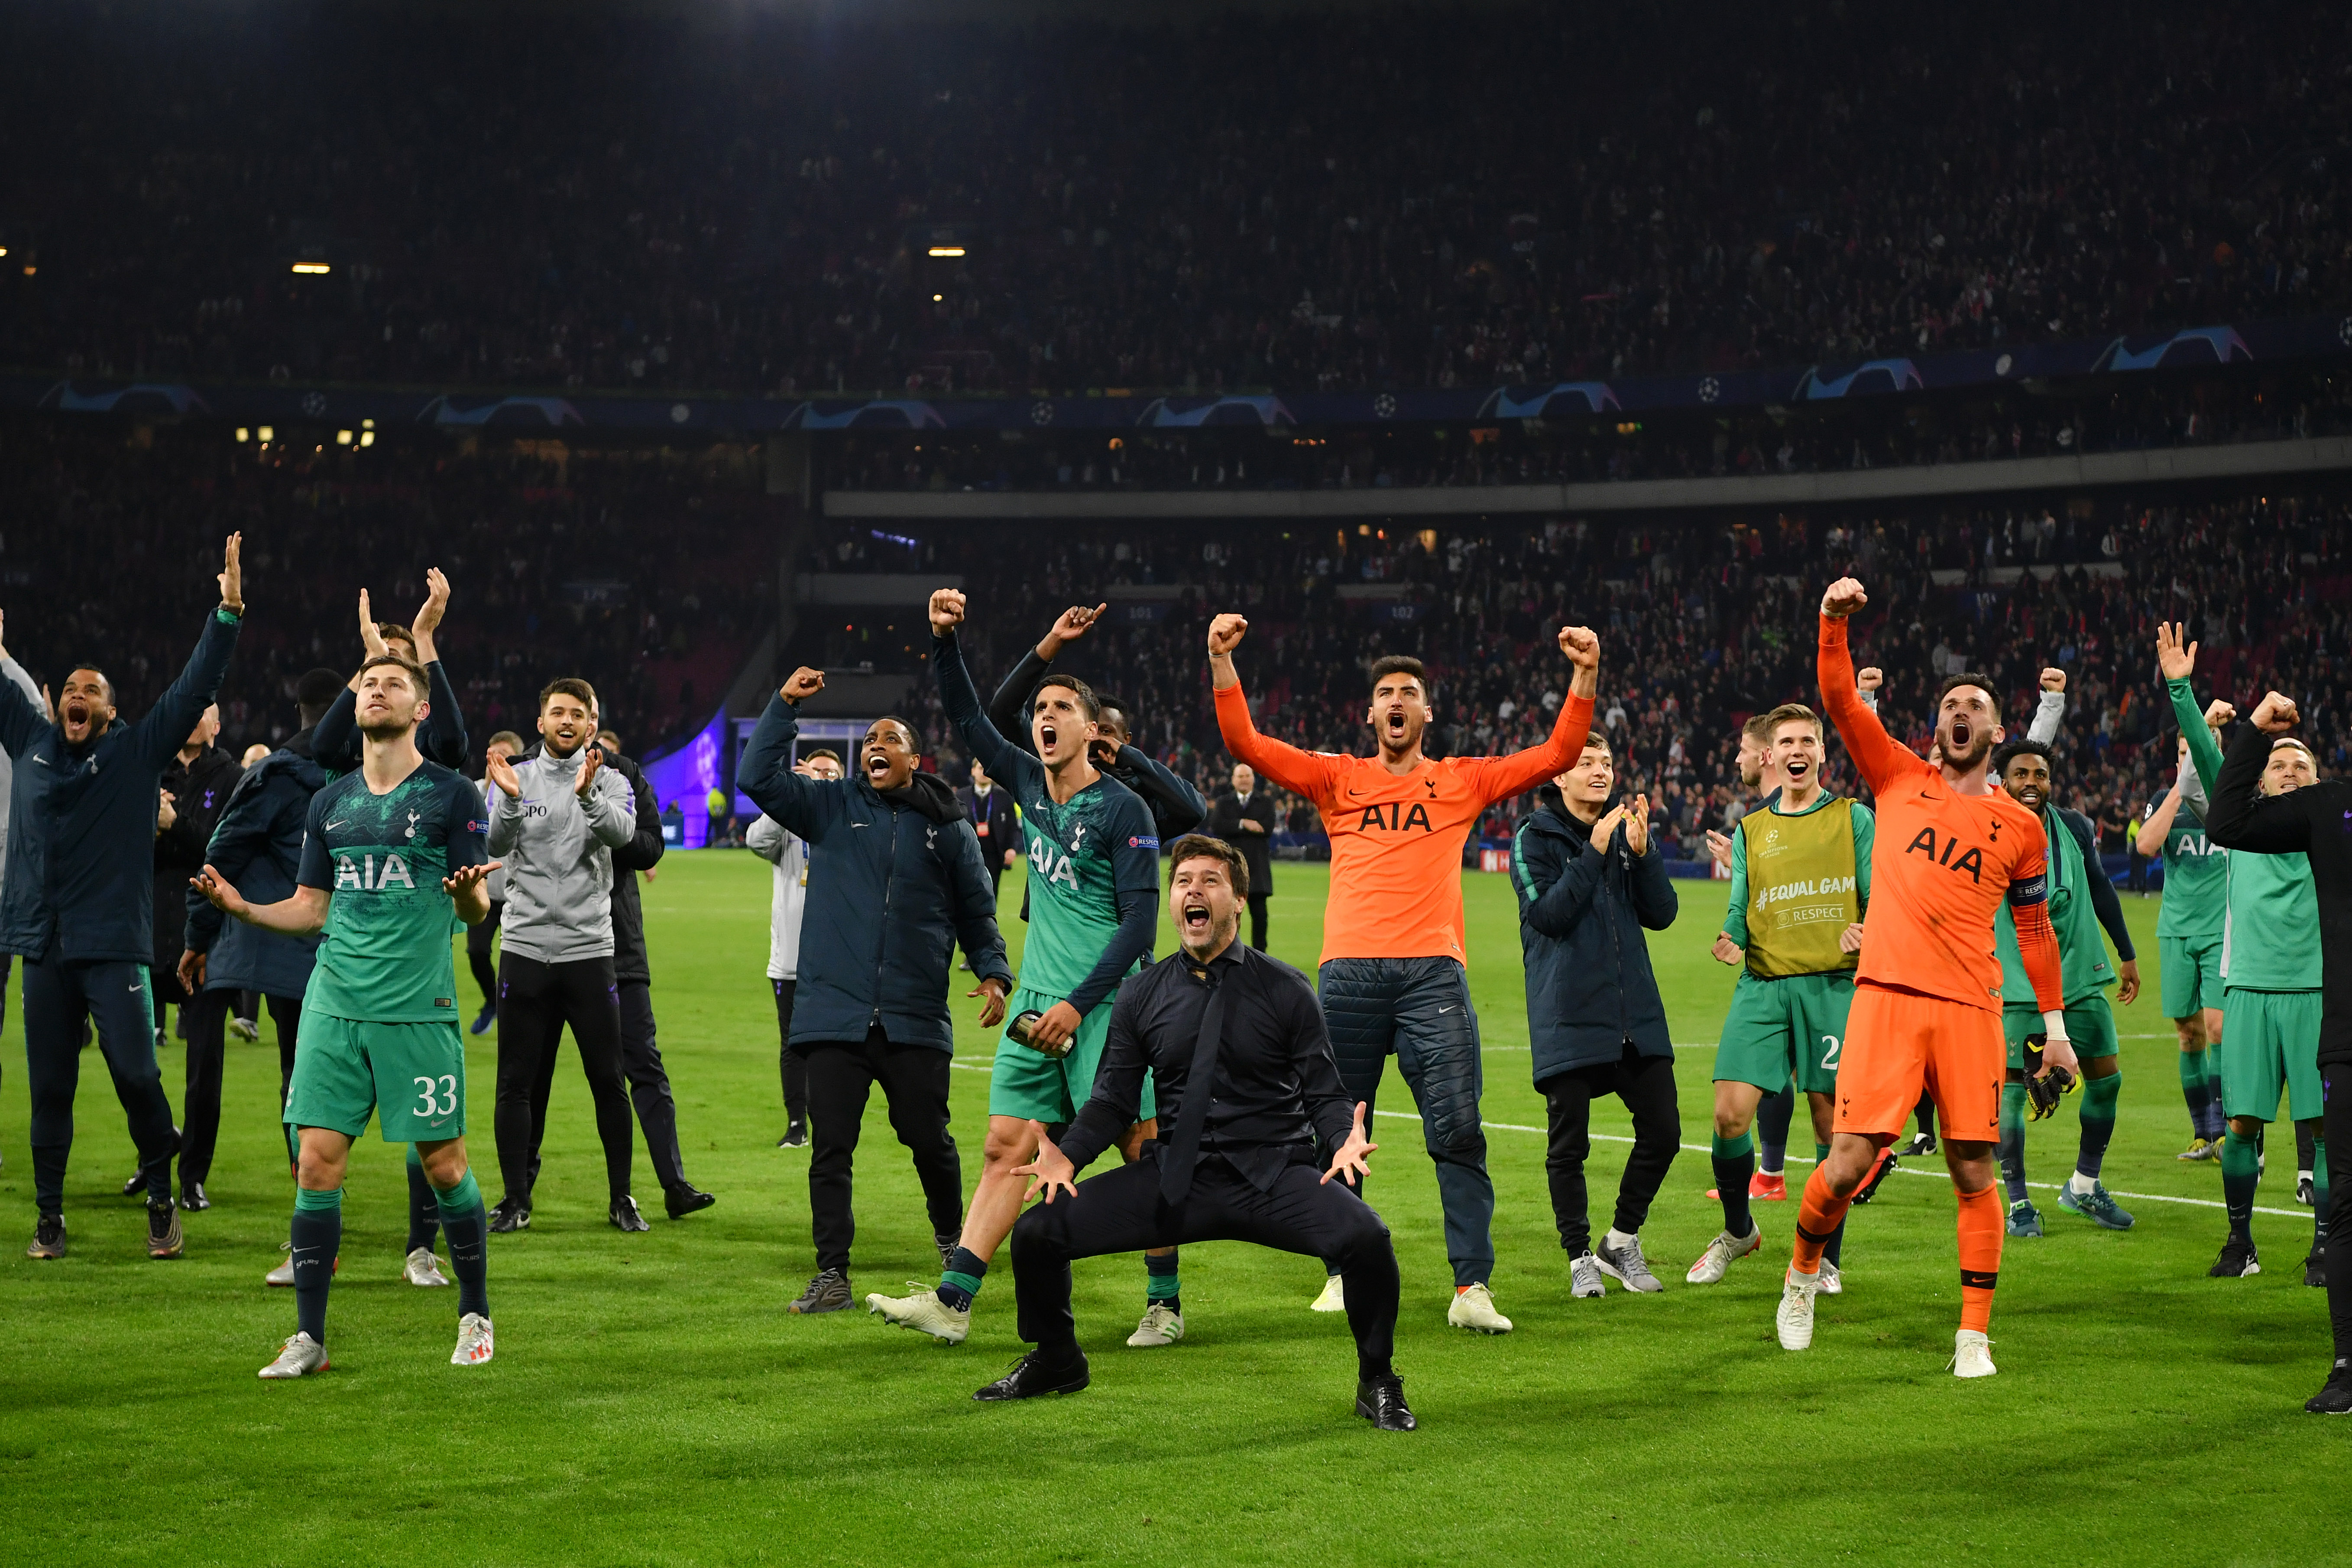 The Miracle of Amsterdam will long live in the memories of Tottenham fans (Photo by Dan Mullan/Getty Images )